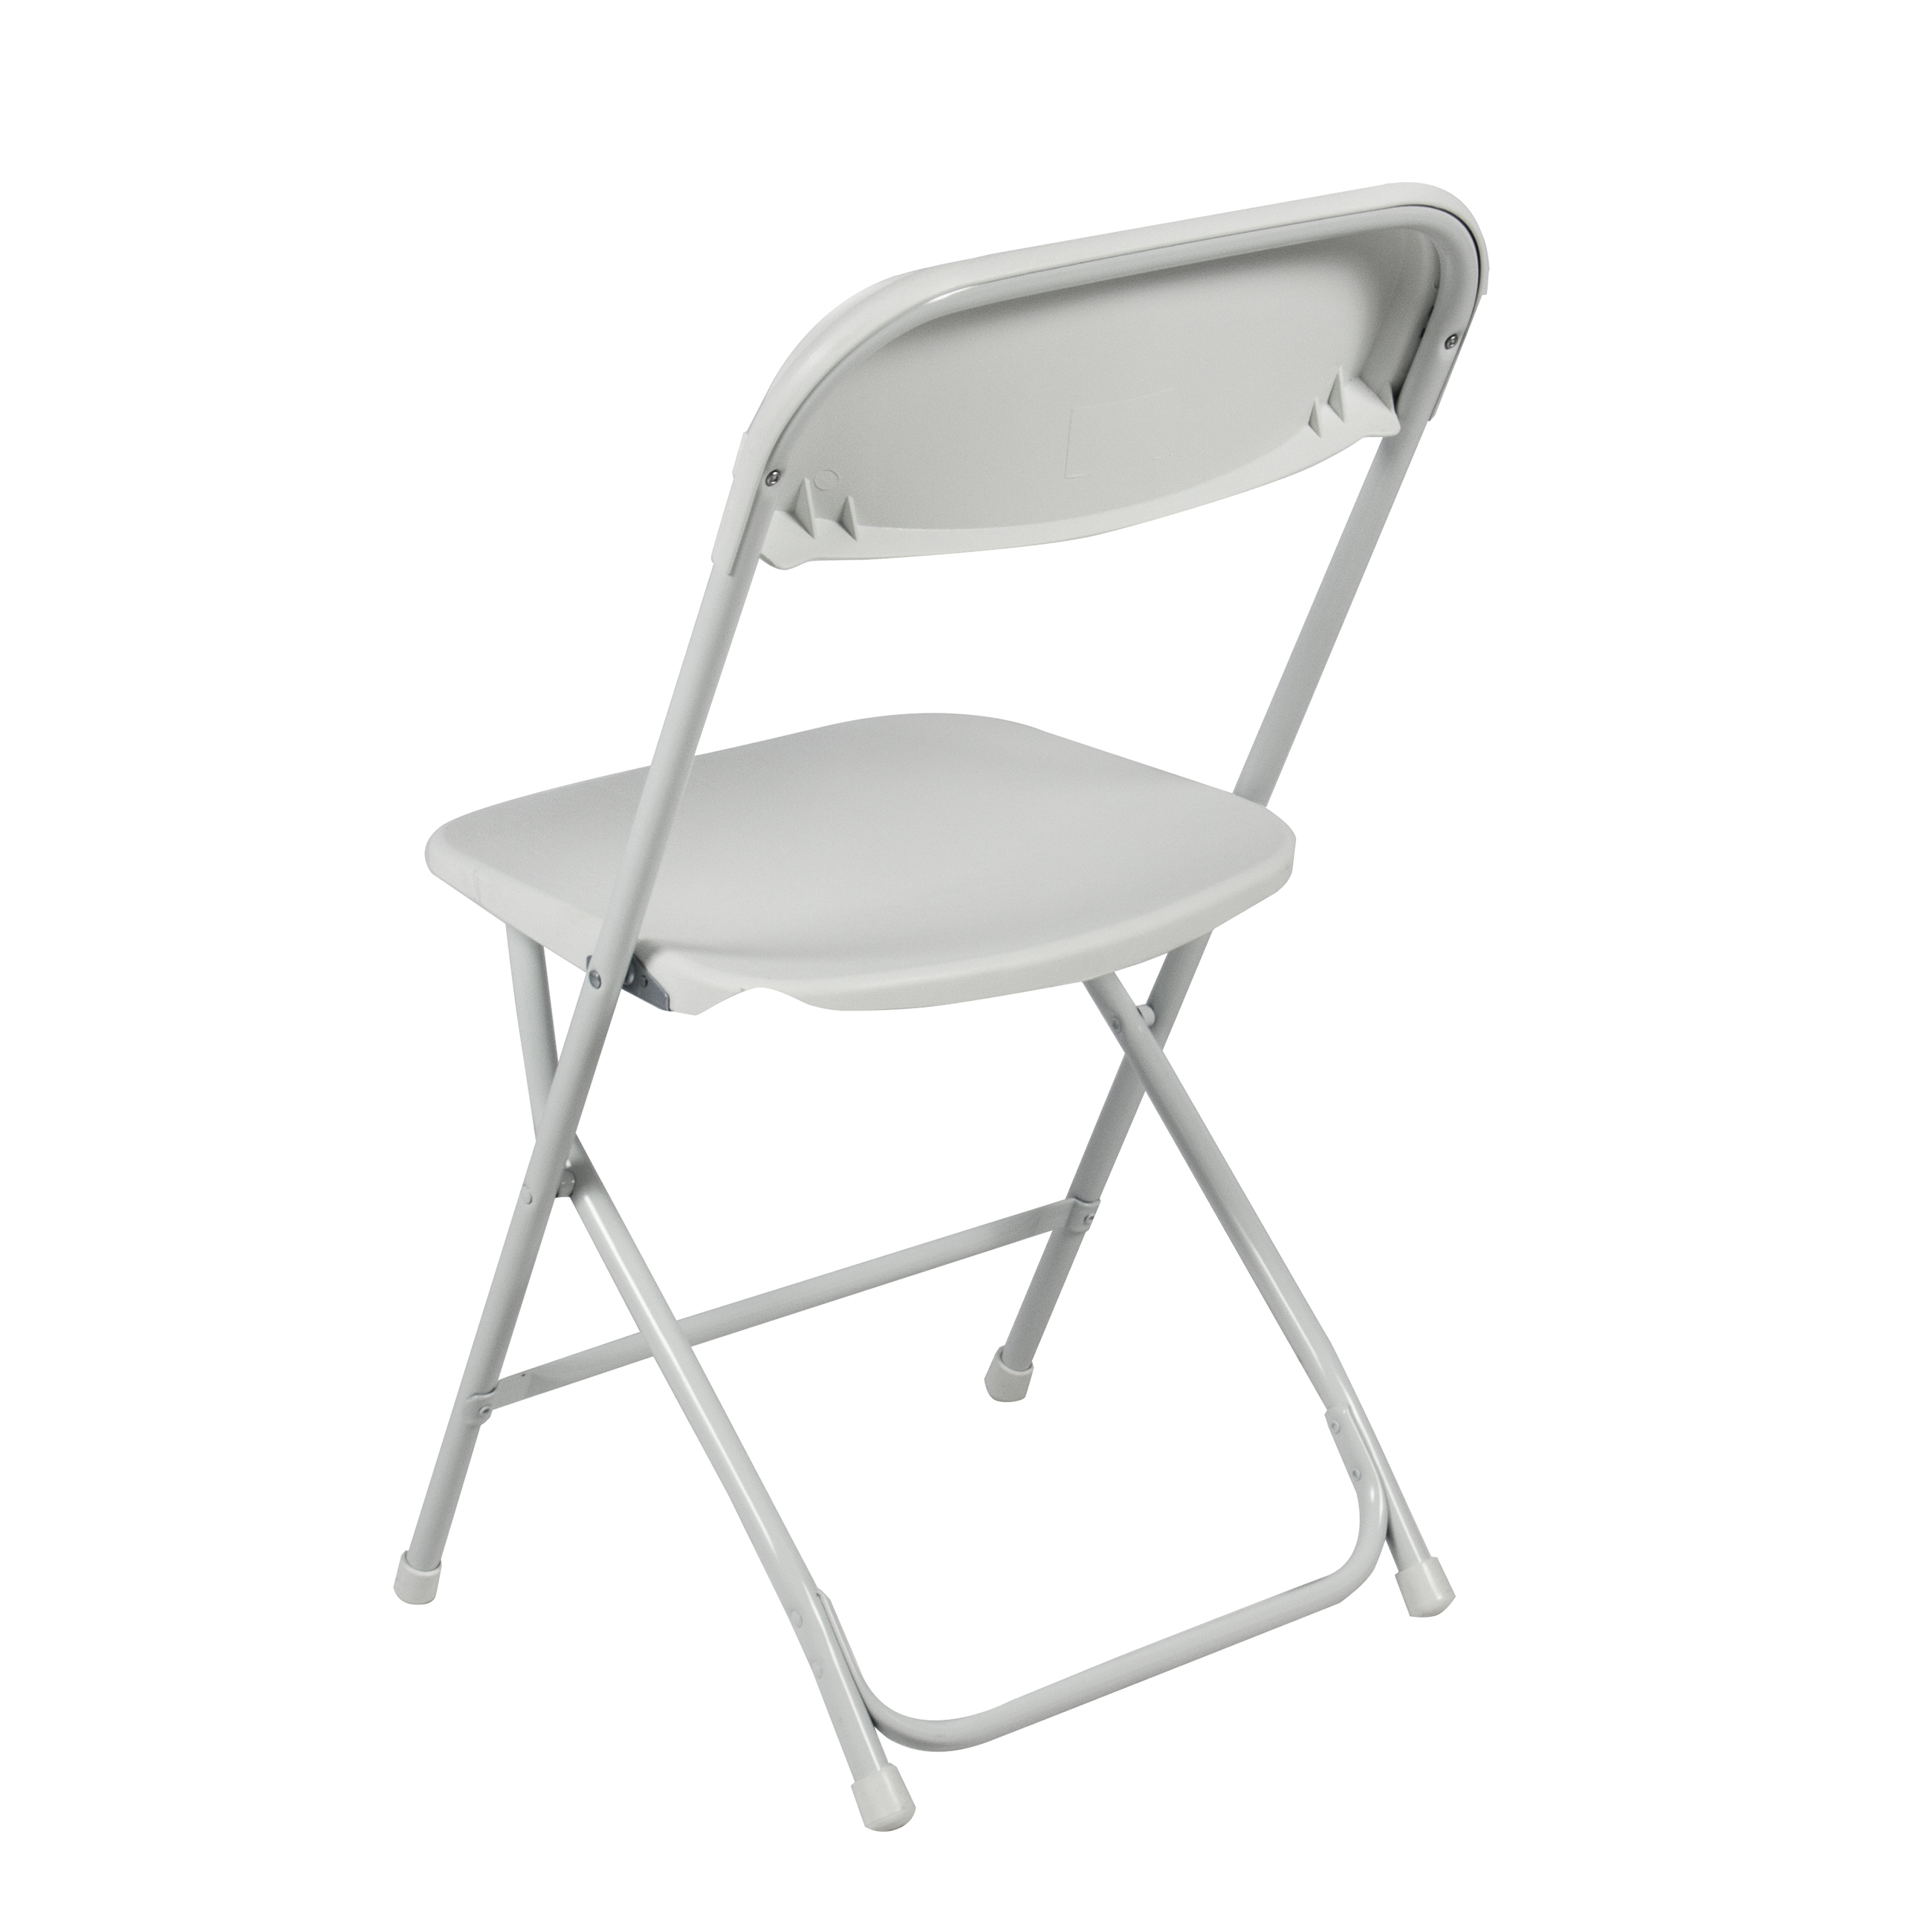 Cozy (5) Commercial White Plastic Folding Chairs Stackable Wedding Party Event  Chair plastic folding chairs